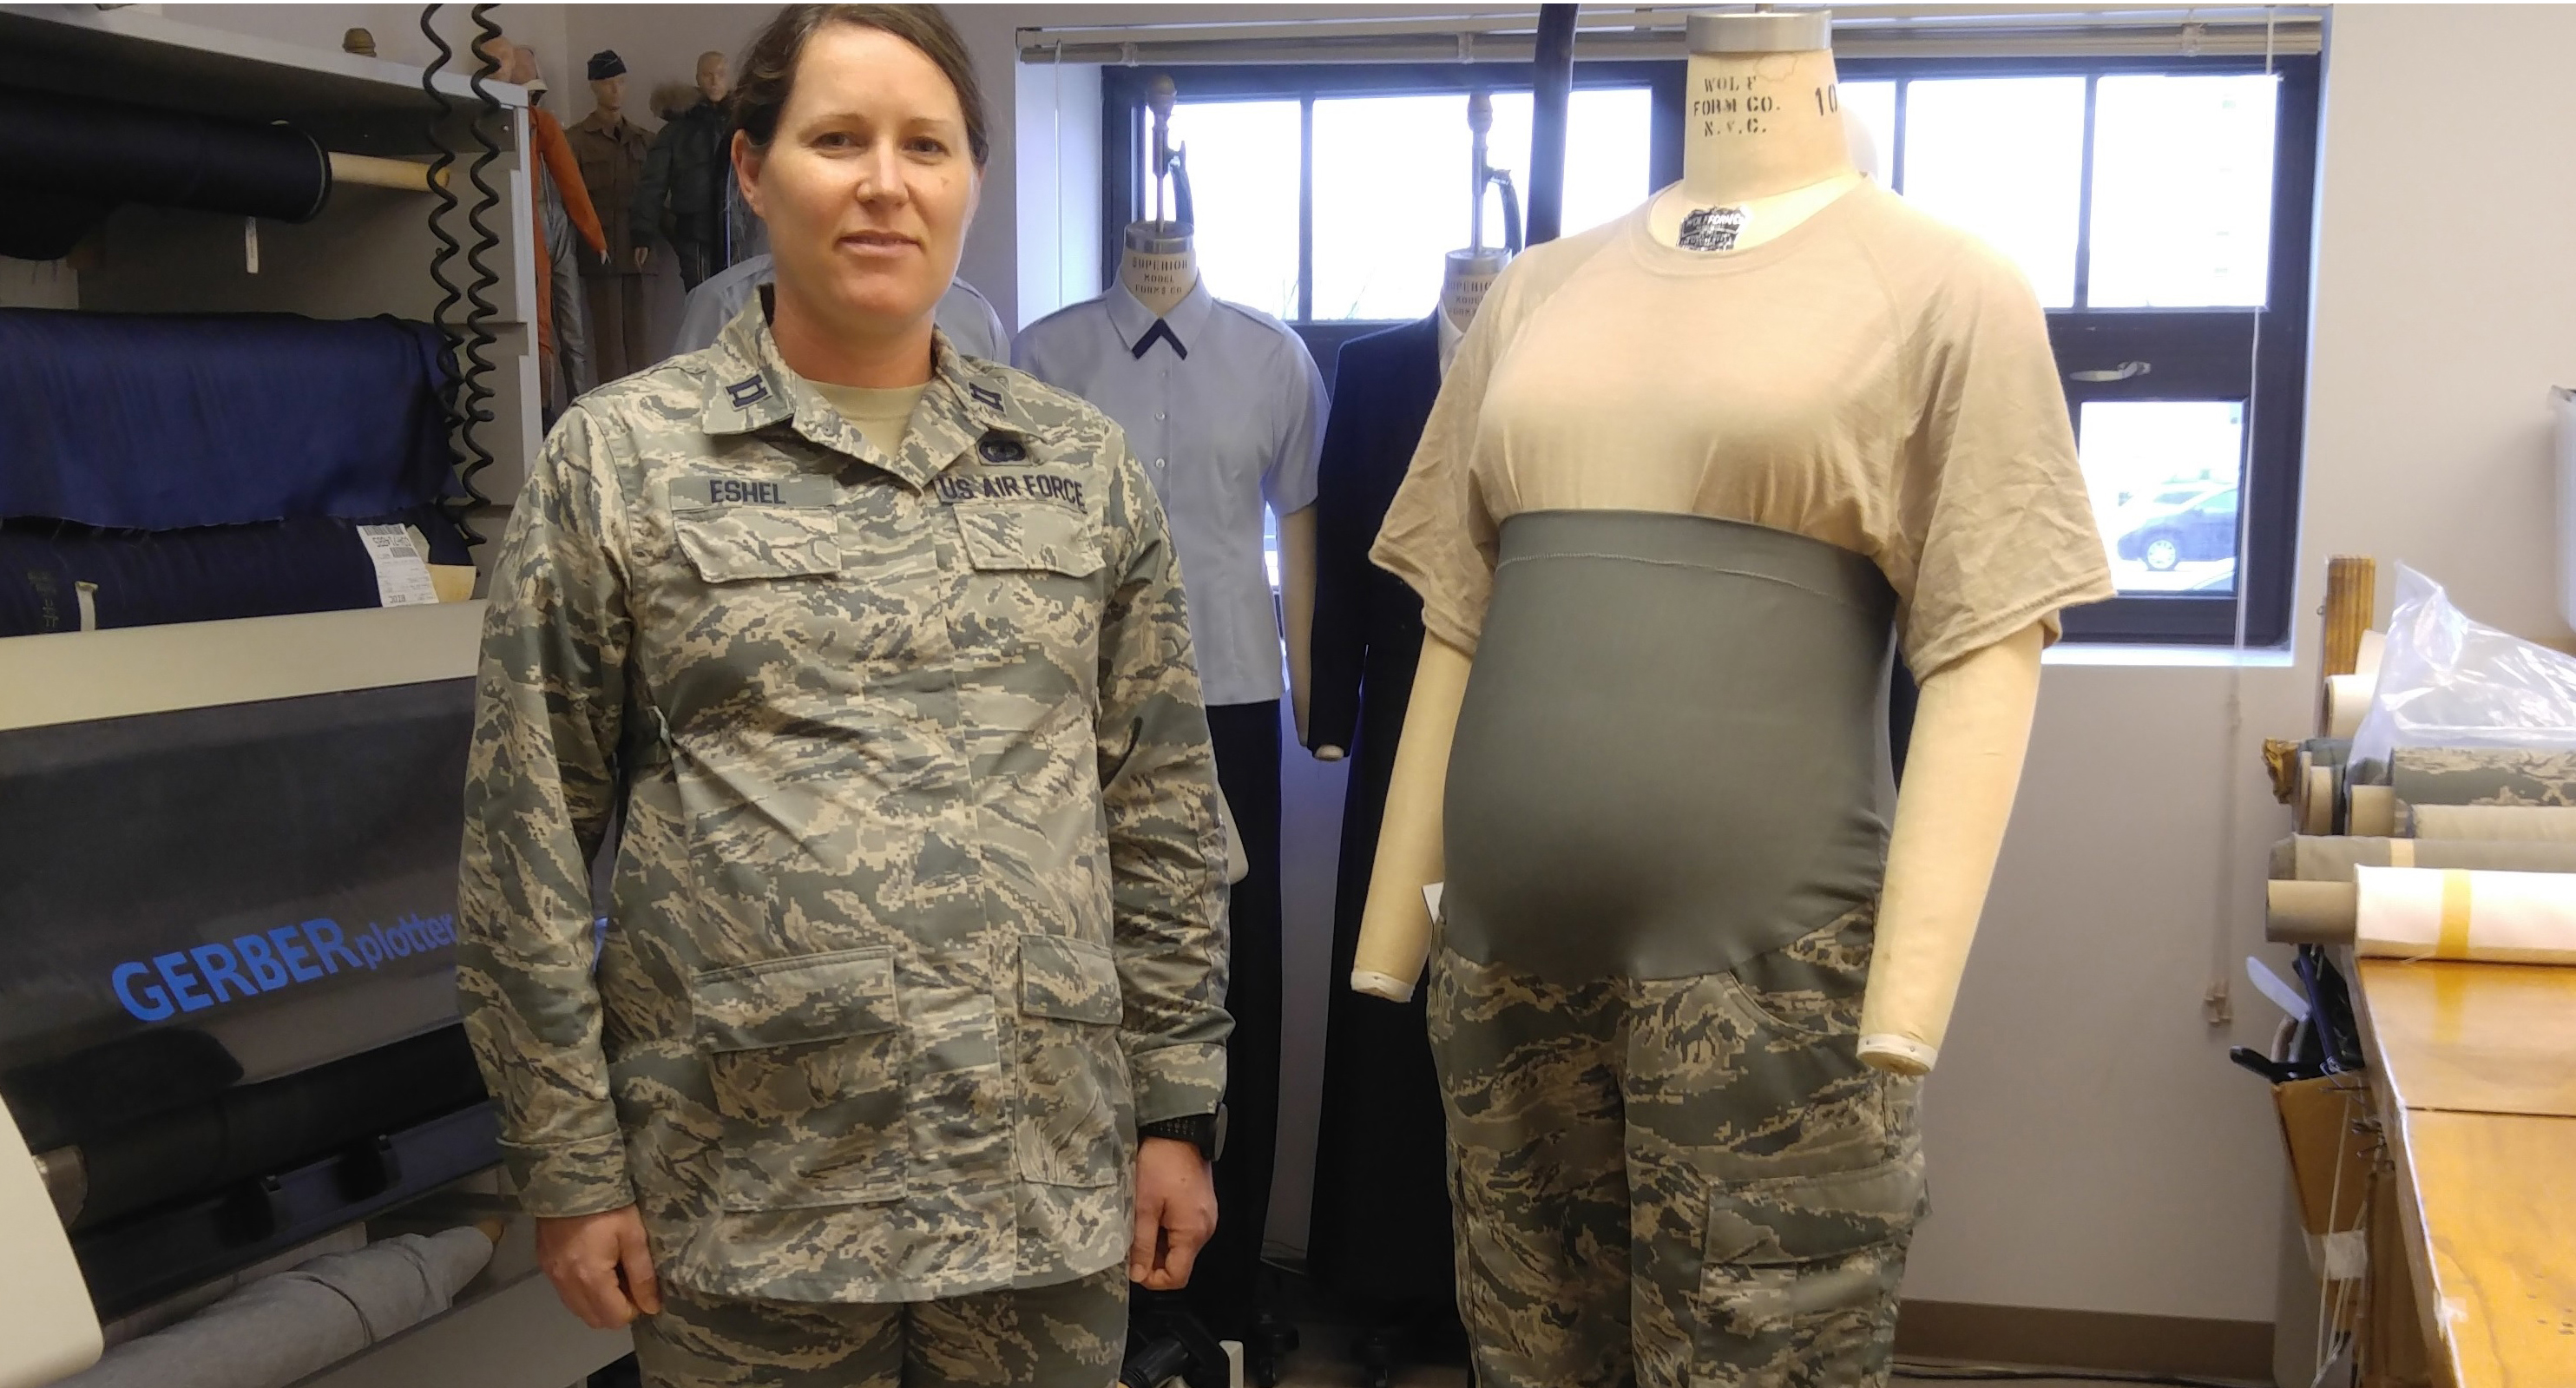 DLATS Air Force Maternity Airman Battle Uniform (MABU) Coat. $ Compare. Army Maternity Semi Formal Blouse. $ Compare. Army Maternity Blouse. $ Compare. Army Maternity Blouse. $ Compare. Best Seller. DLATS Air Force Maternity Airman Battle Uniform .